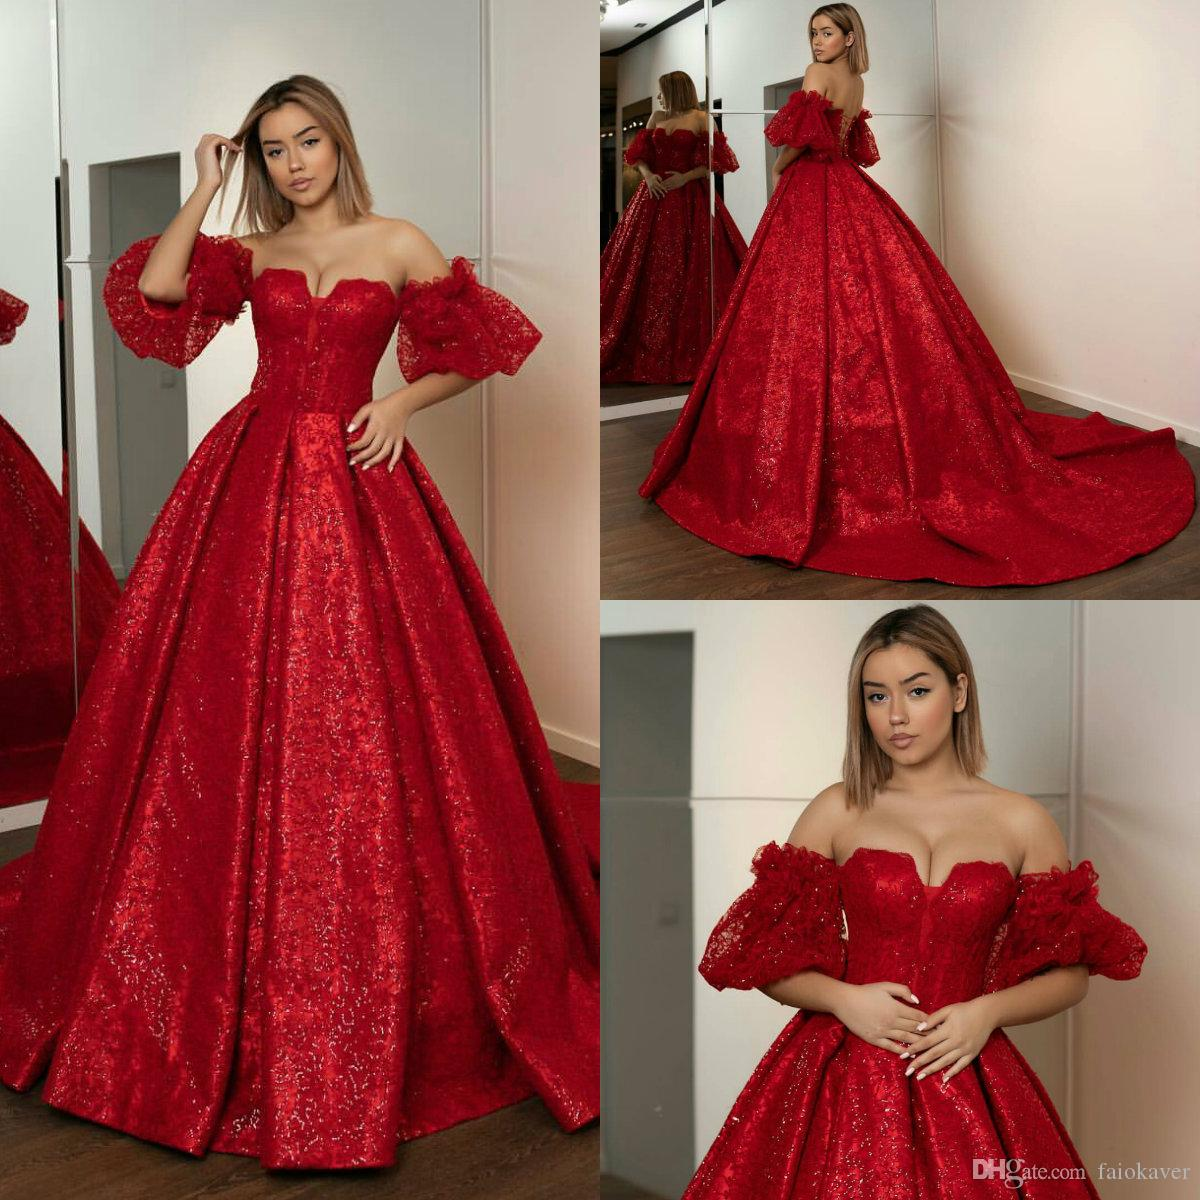 2019 Gorgeous Ball Gown Prom Dresses Sweetheart Short Sleeves Sweep Train Sequined Evening Dress Party Wear Custom Made Formal Gowns